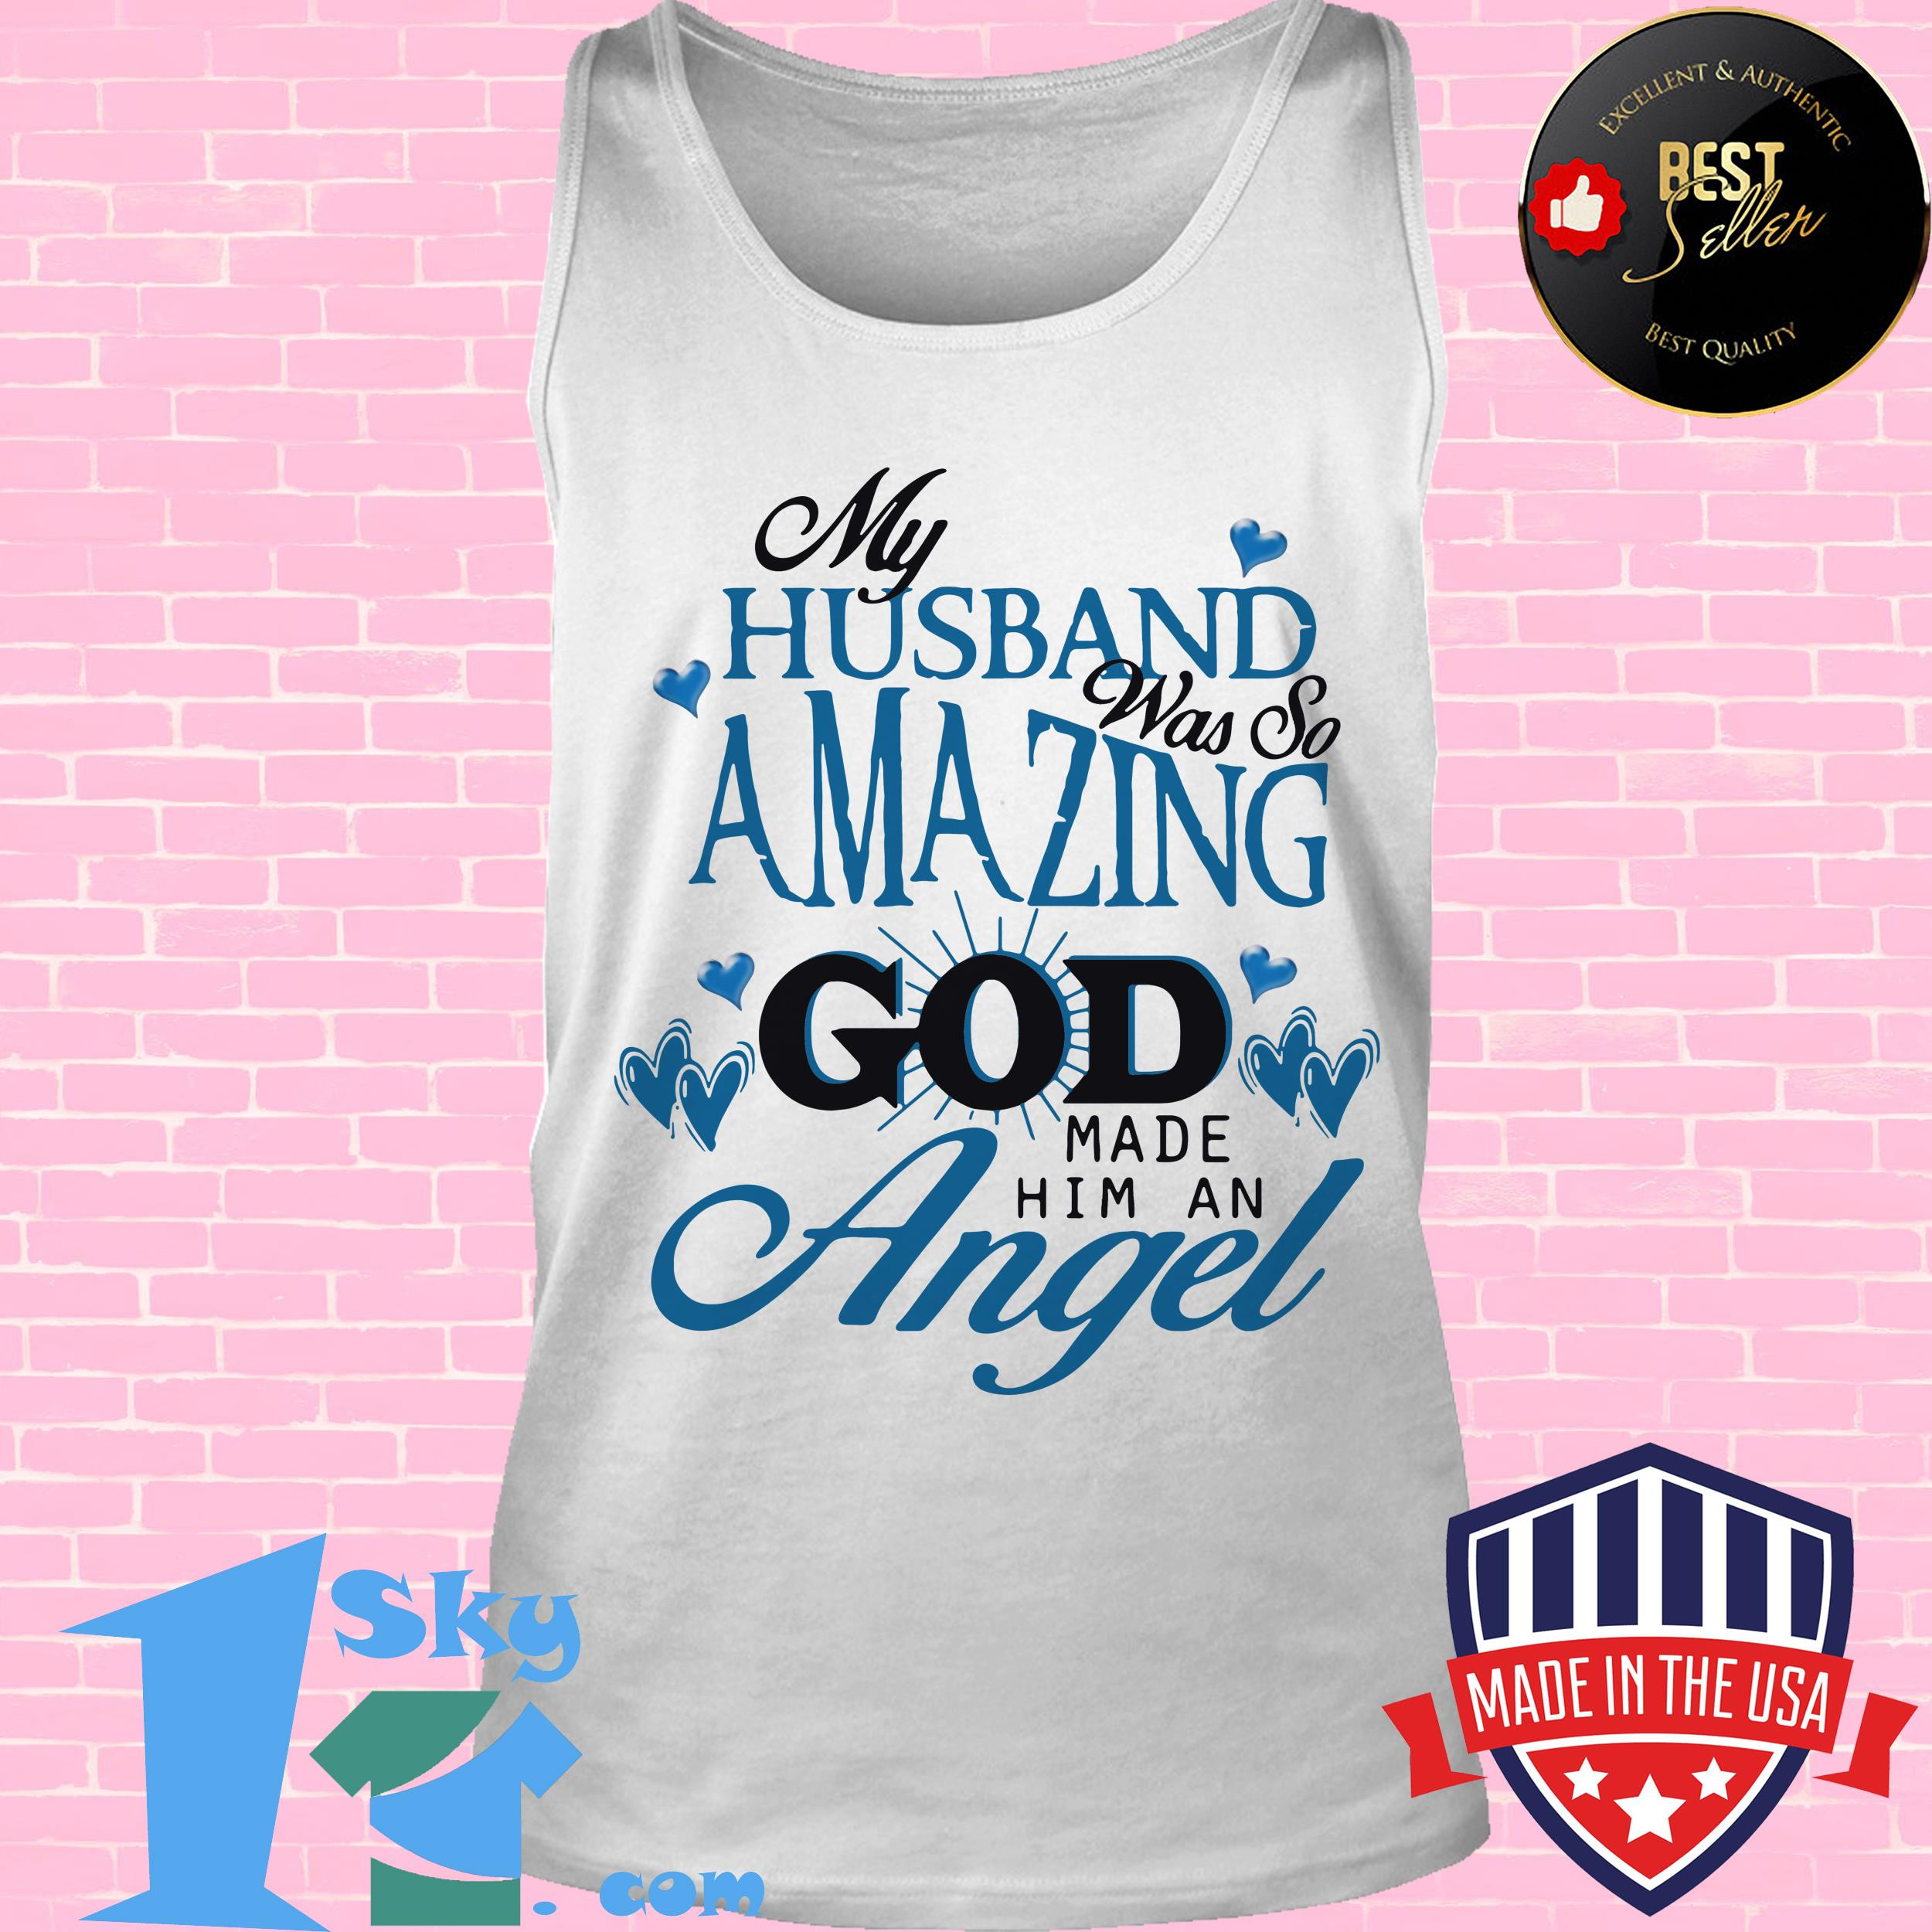 my husband was so amazing god made him an angel tank top - My Husband Was So Amazing God Made Him An Angel Shirt